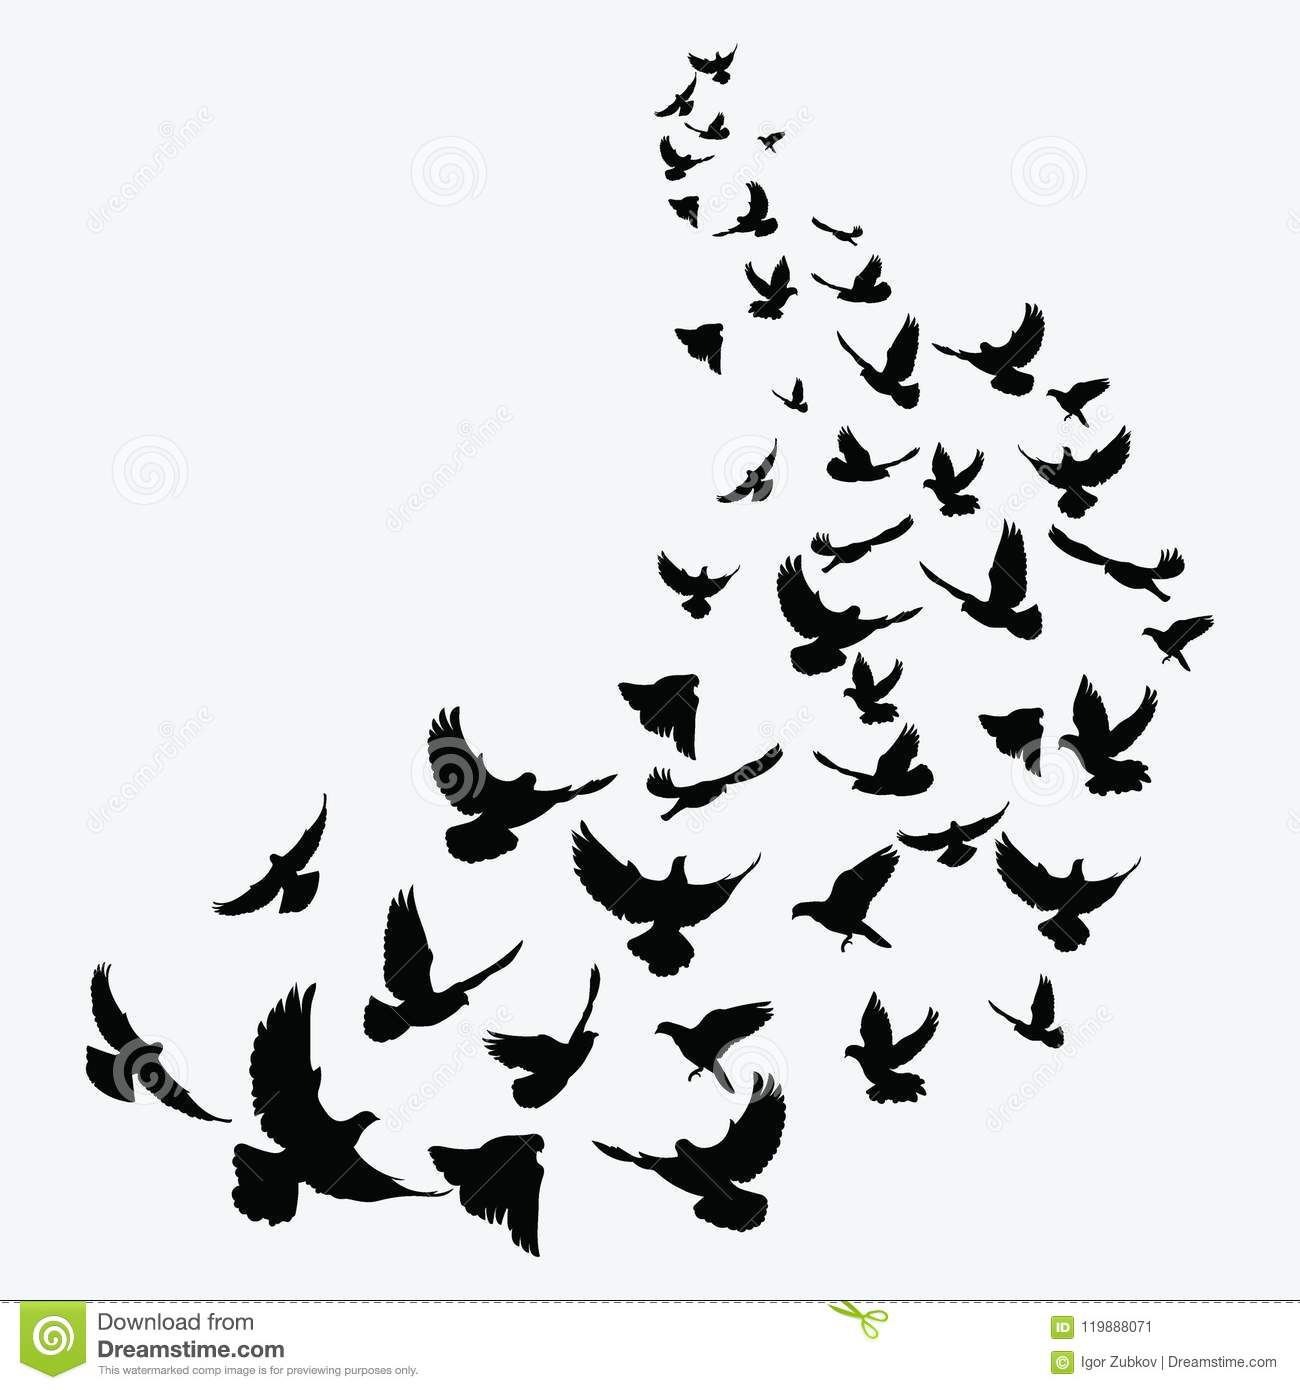 Good information flying bird clip art black and white business!